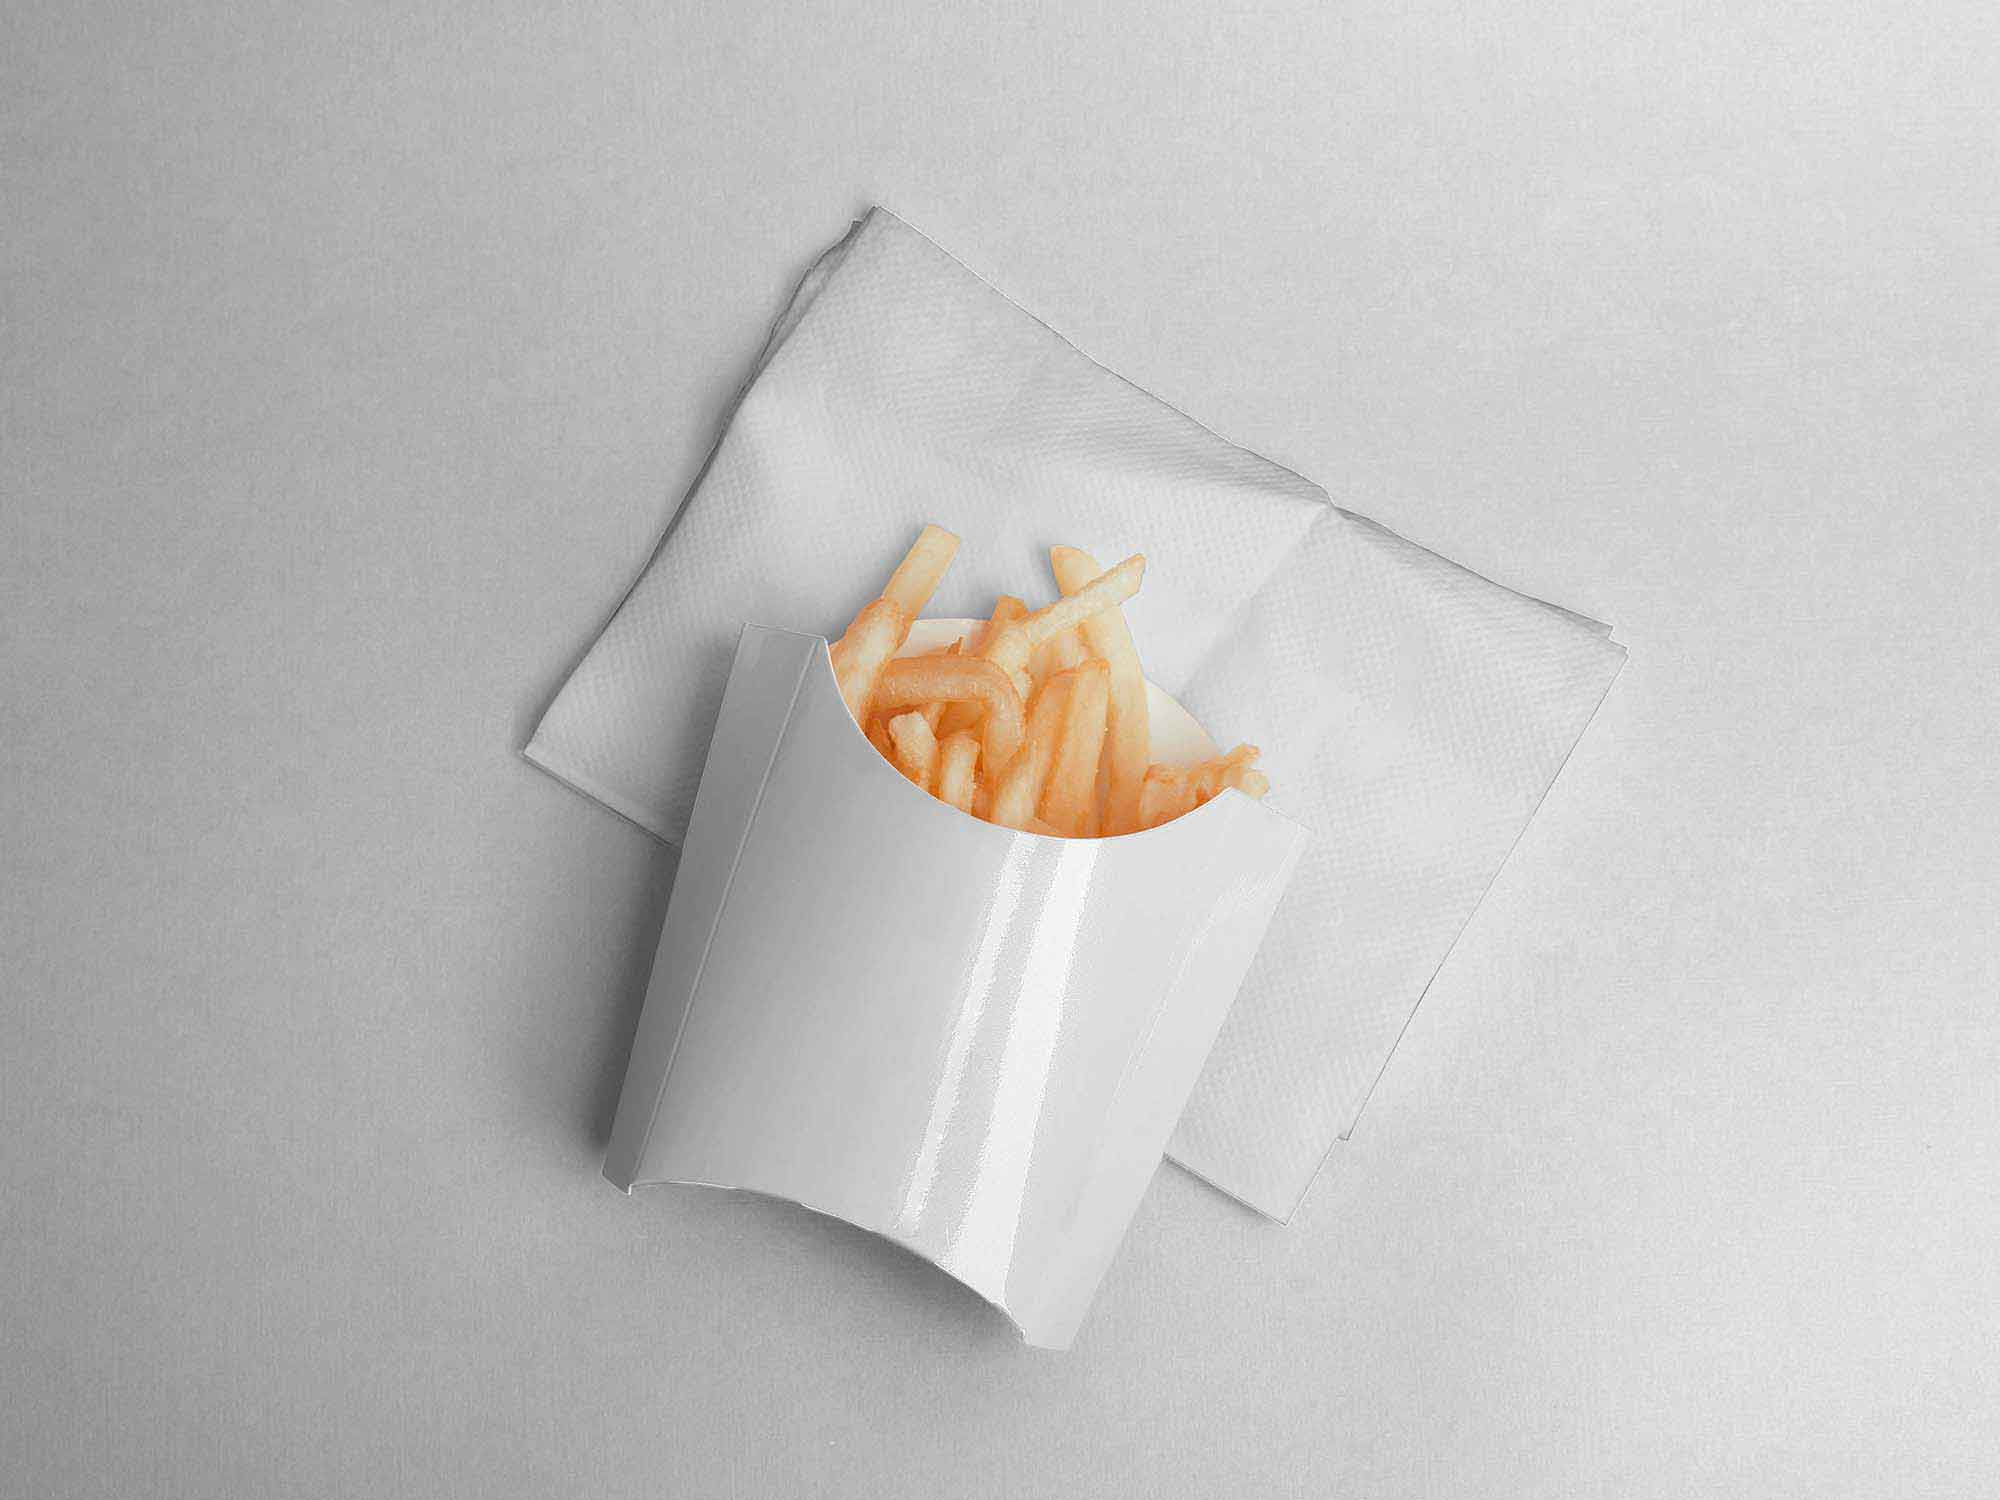 French Fries Packaging Mockup 3